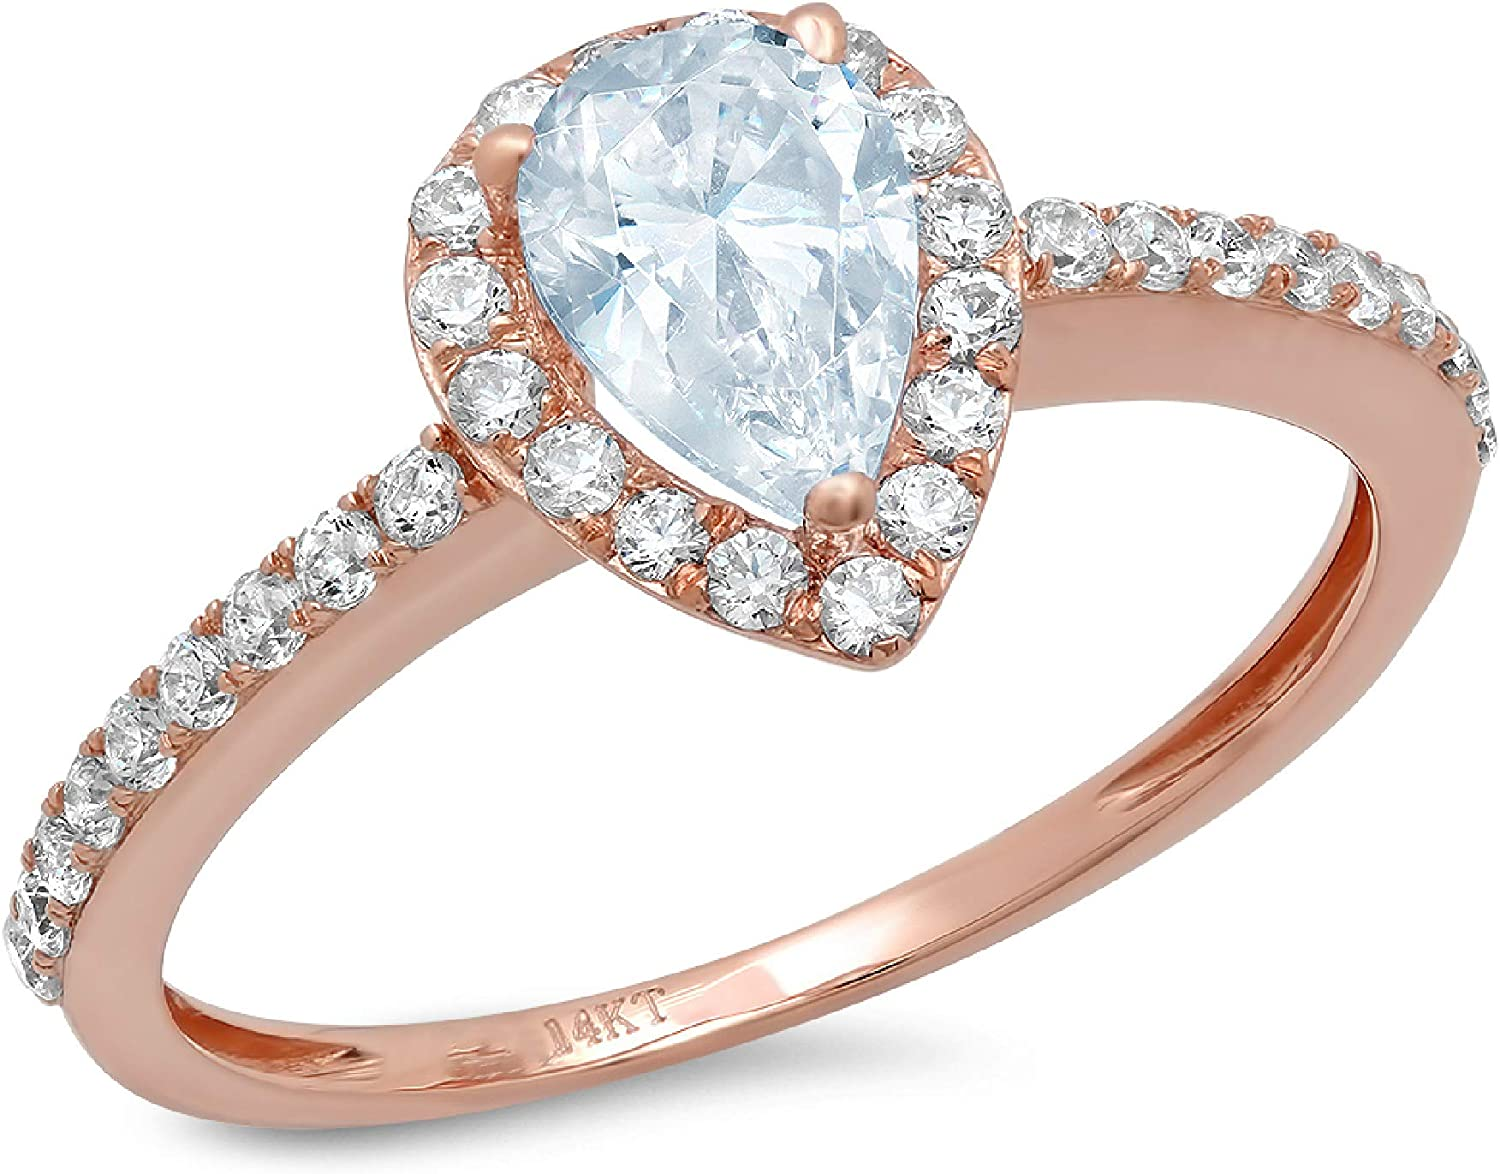 1.19ct Brilliant Pear Cut Solitaire with accent Aquamarine Blue Simulated Diamond CZ VVS1 Designer Modern Statement Ring Real Solid 14k Rose Gold Clara Pucci